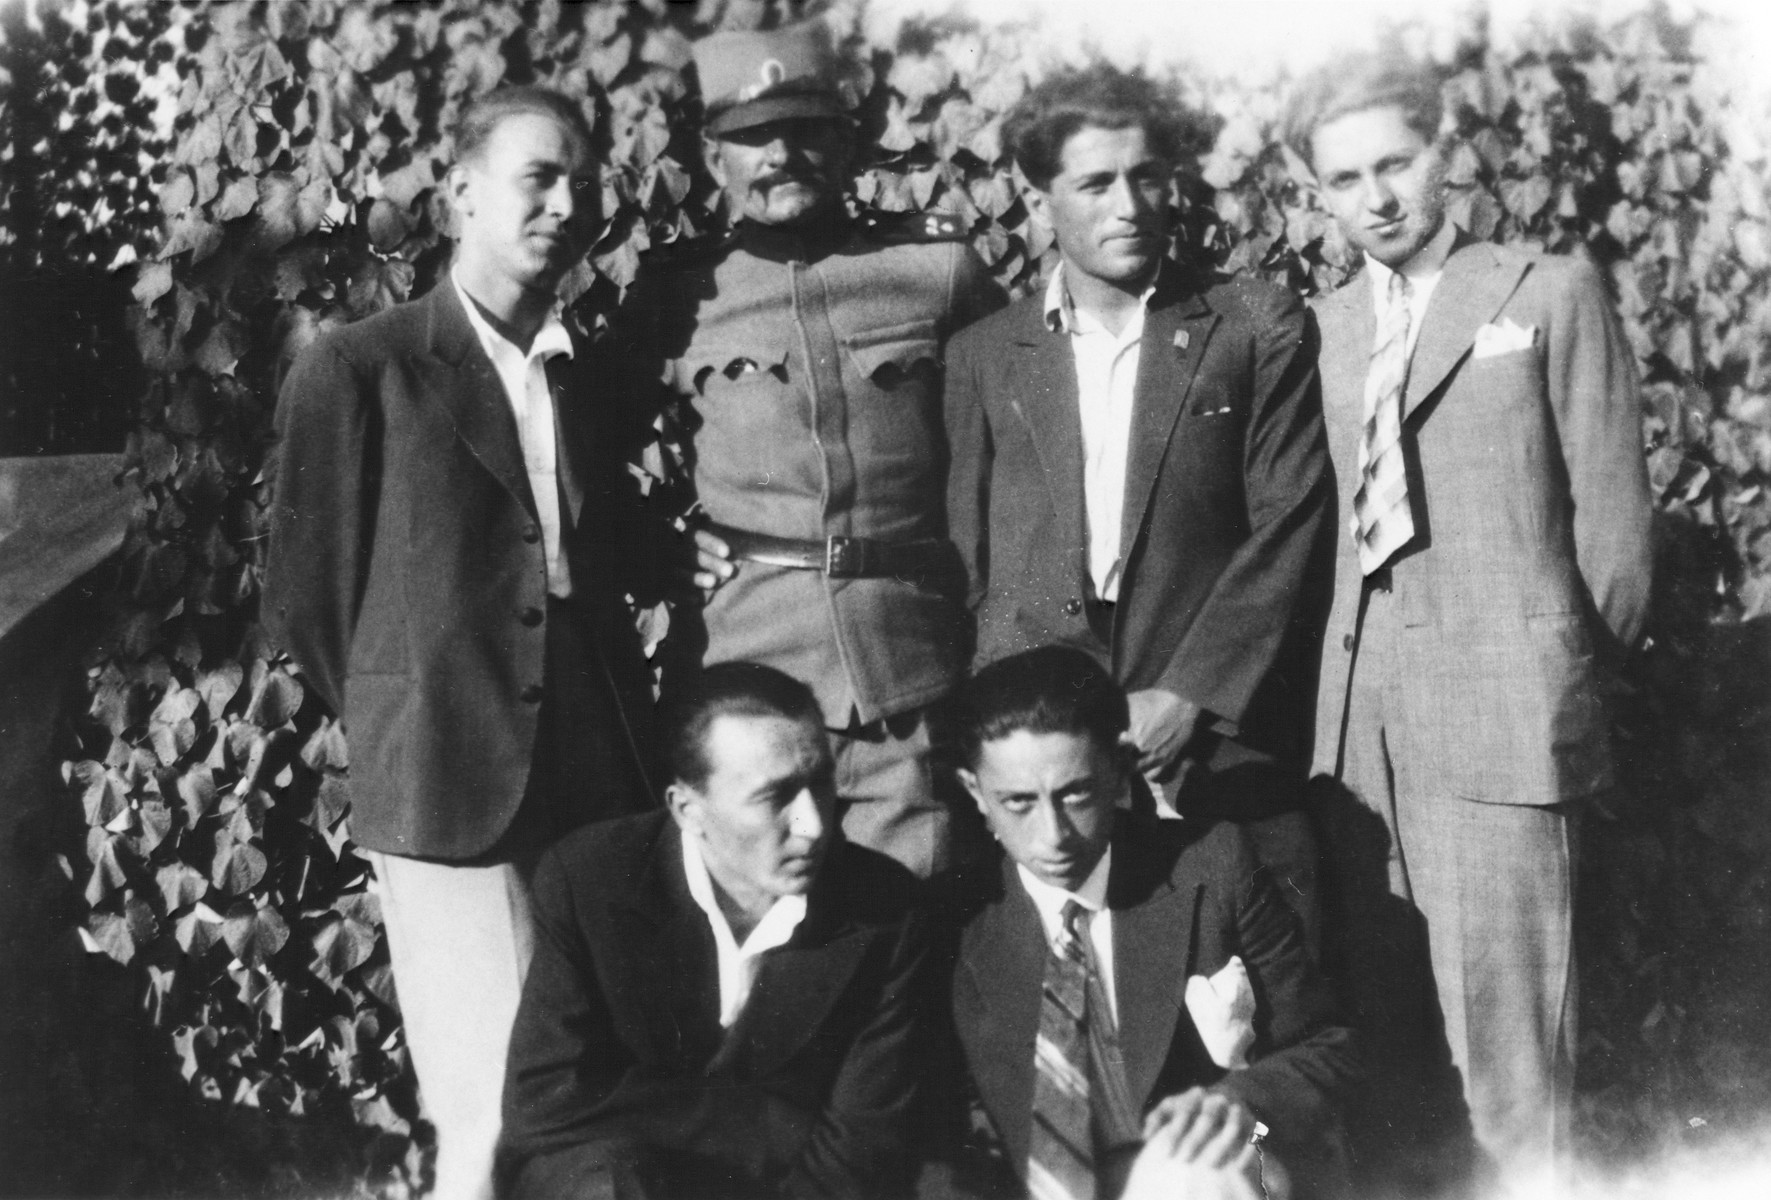 Group portrait of six Macedonian Jewish men, one of whom is wearing military uniform.